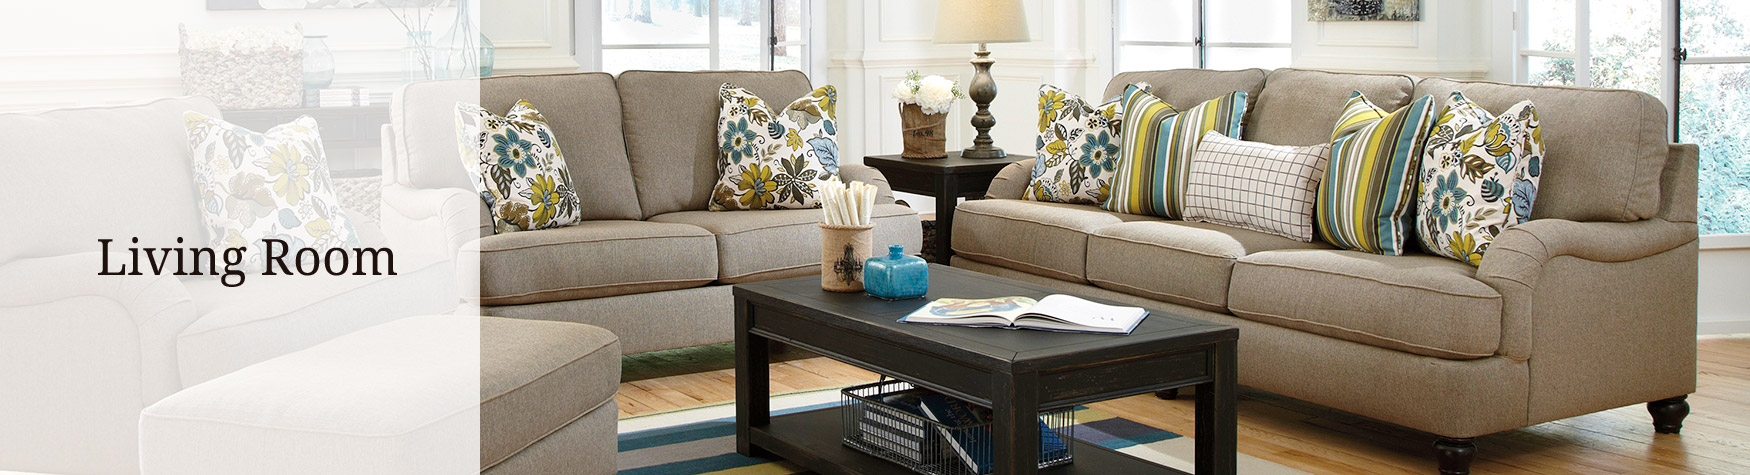 Living Room Furniture On Sale In Holland Mi At Furniture And